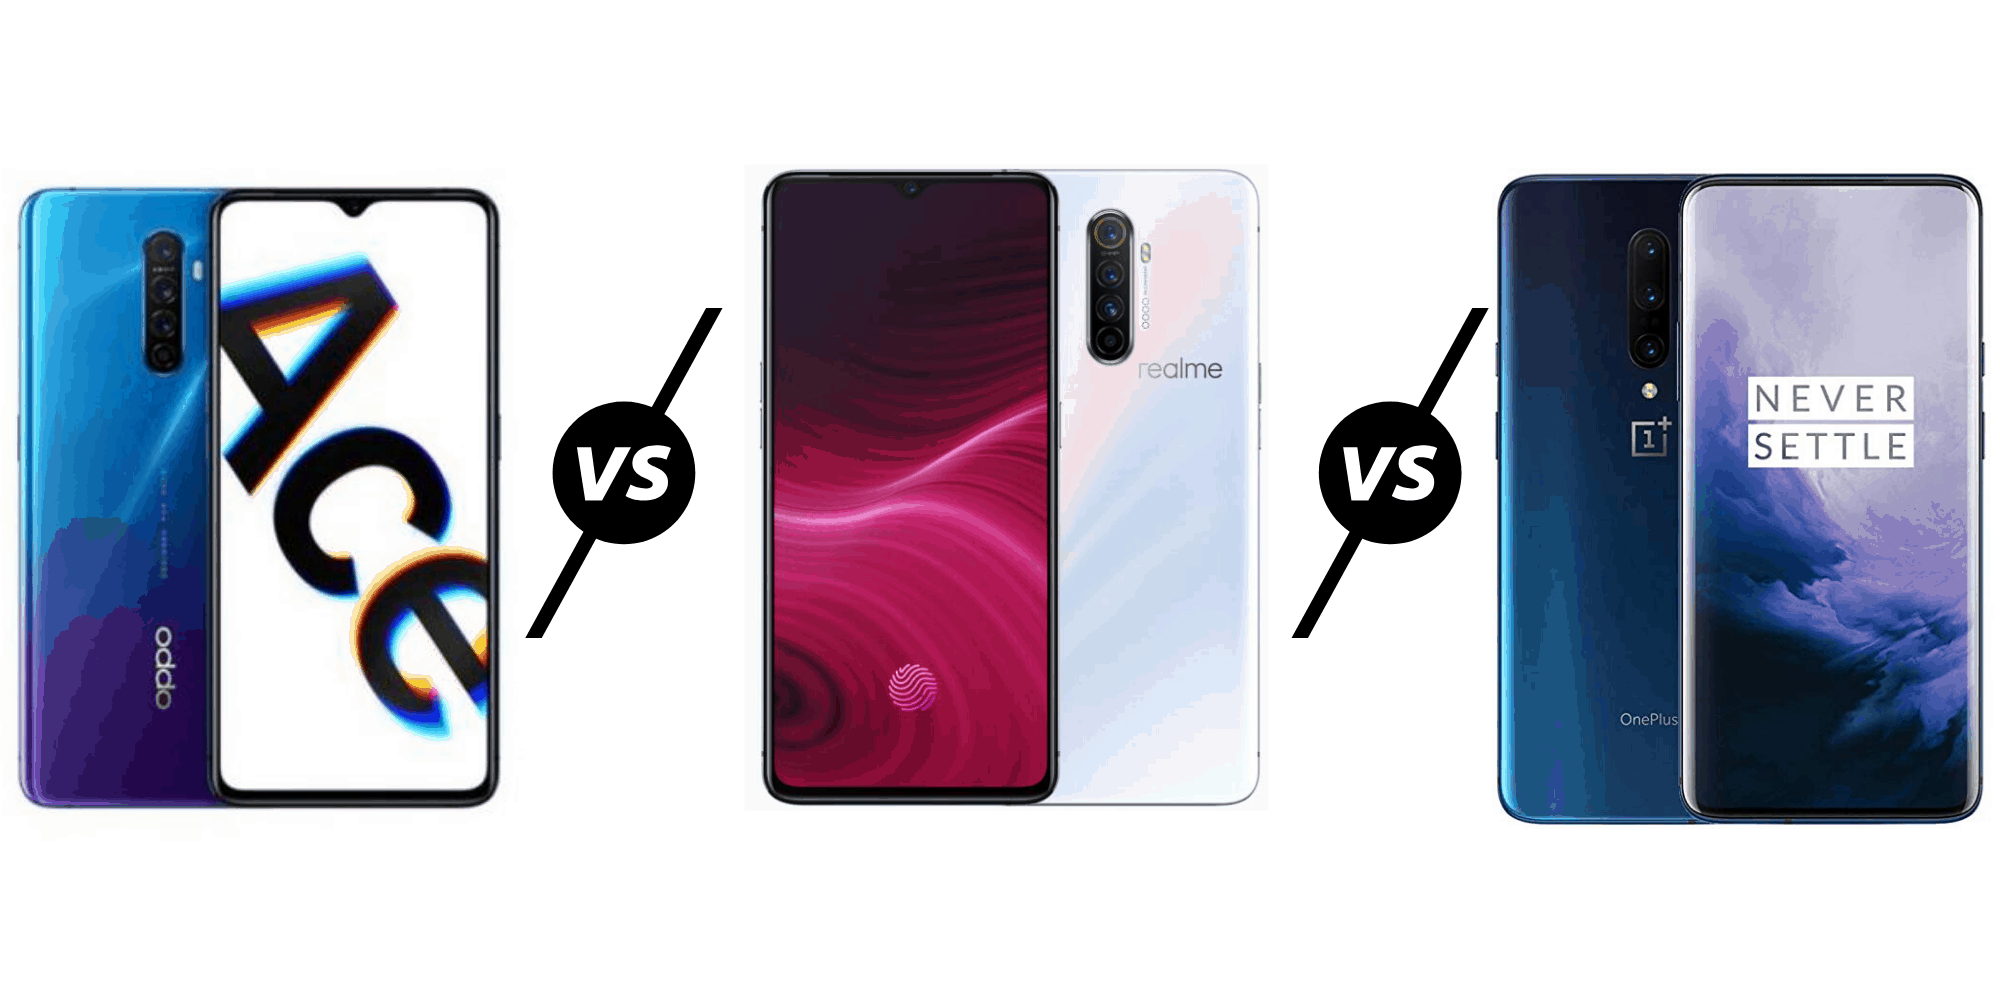 Oppo Reno Ace vs Realme X2 Pro vs OnePlus 7T Compared – Three phones with very similar specs